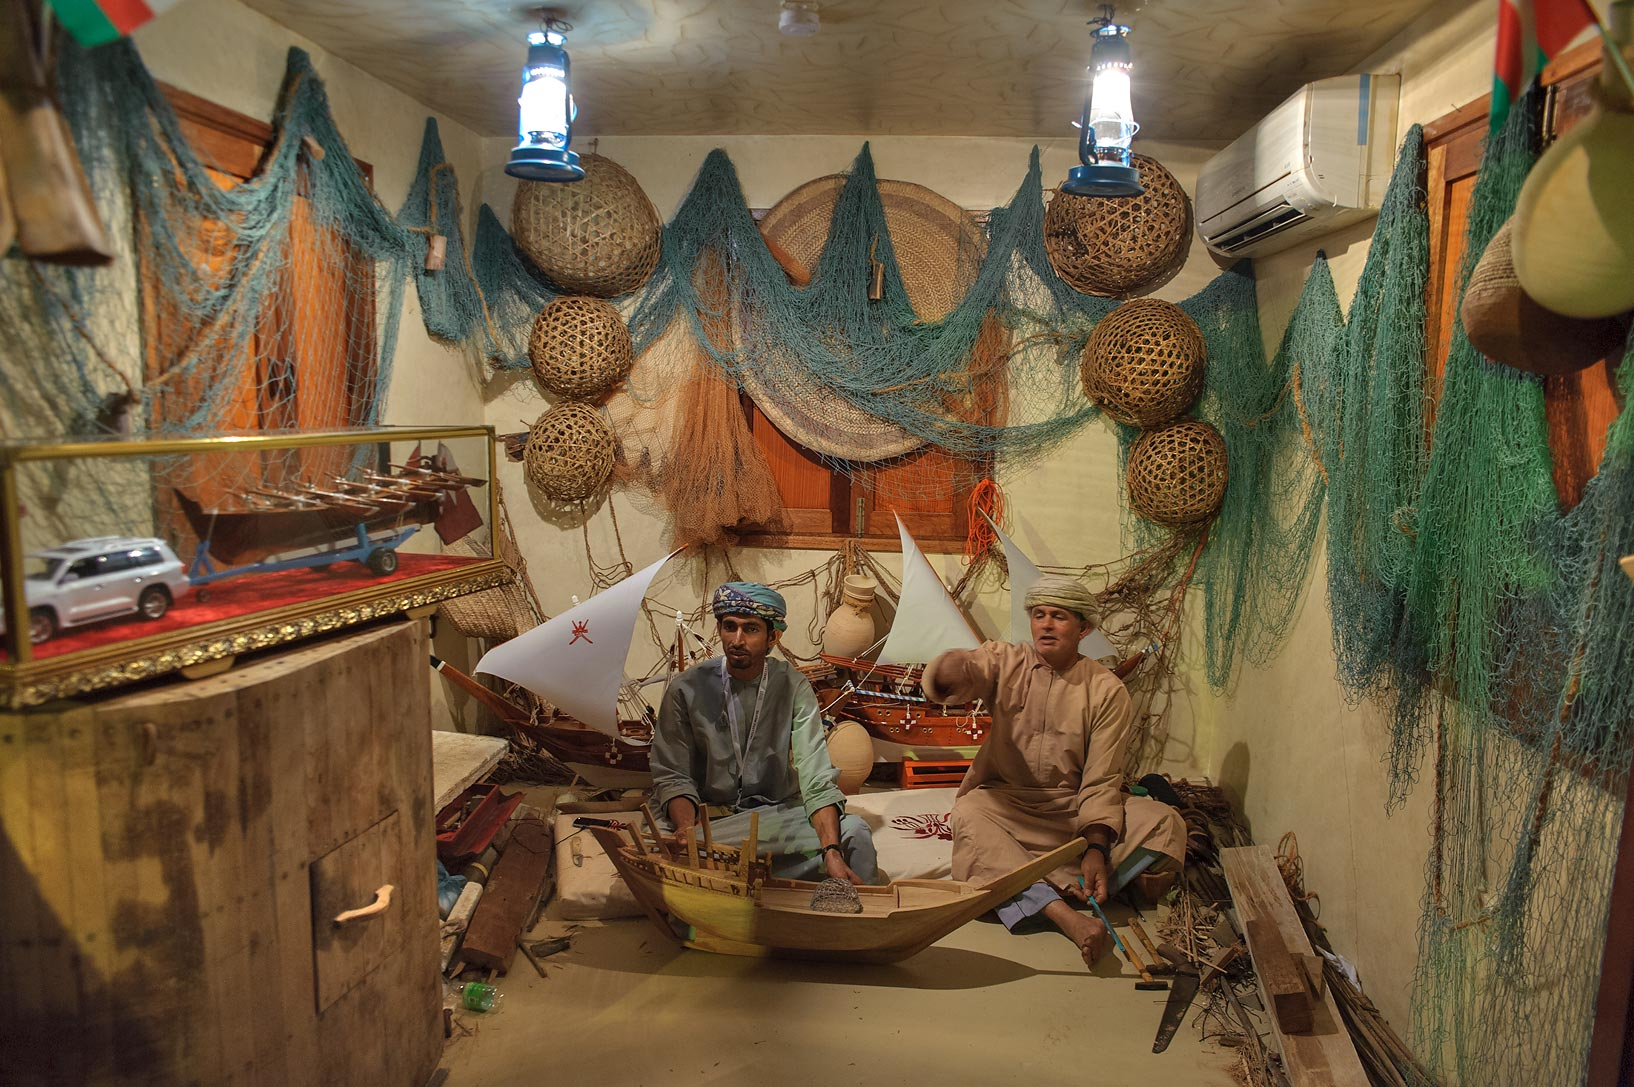 Folk crafts at Traditional Dhow Festival in Katara Cultural Village. Doha, Qatar